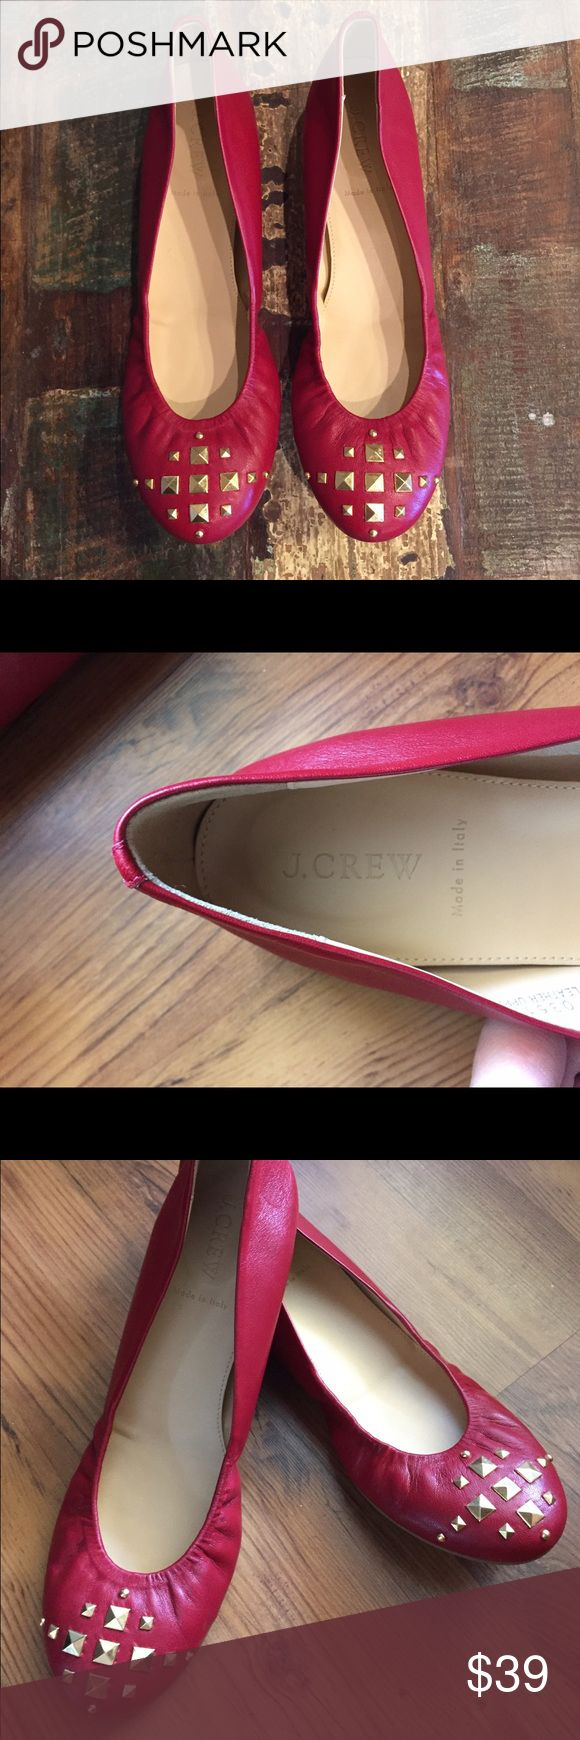 J. Crew cranberry red ballet flats Beautiful red ballet flats made in Italy that feature gold decorative brads. Worn 2-3 times, & in excellent like new condition!❤️ J. Crew Shoes Flats & Loafers